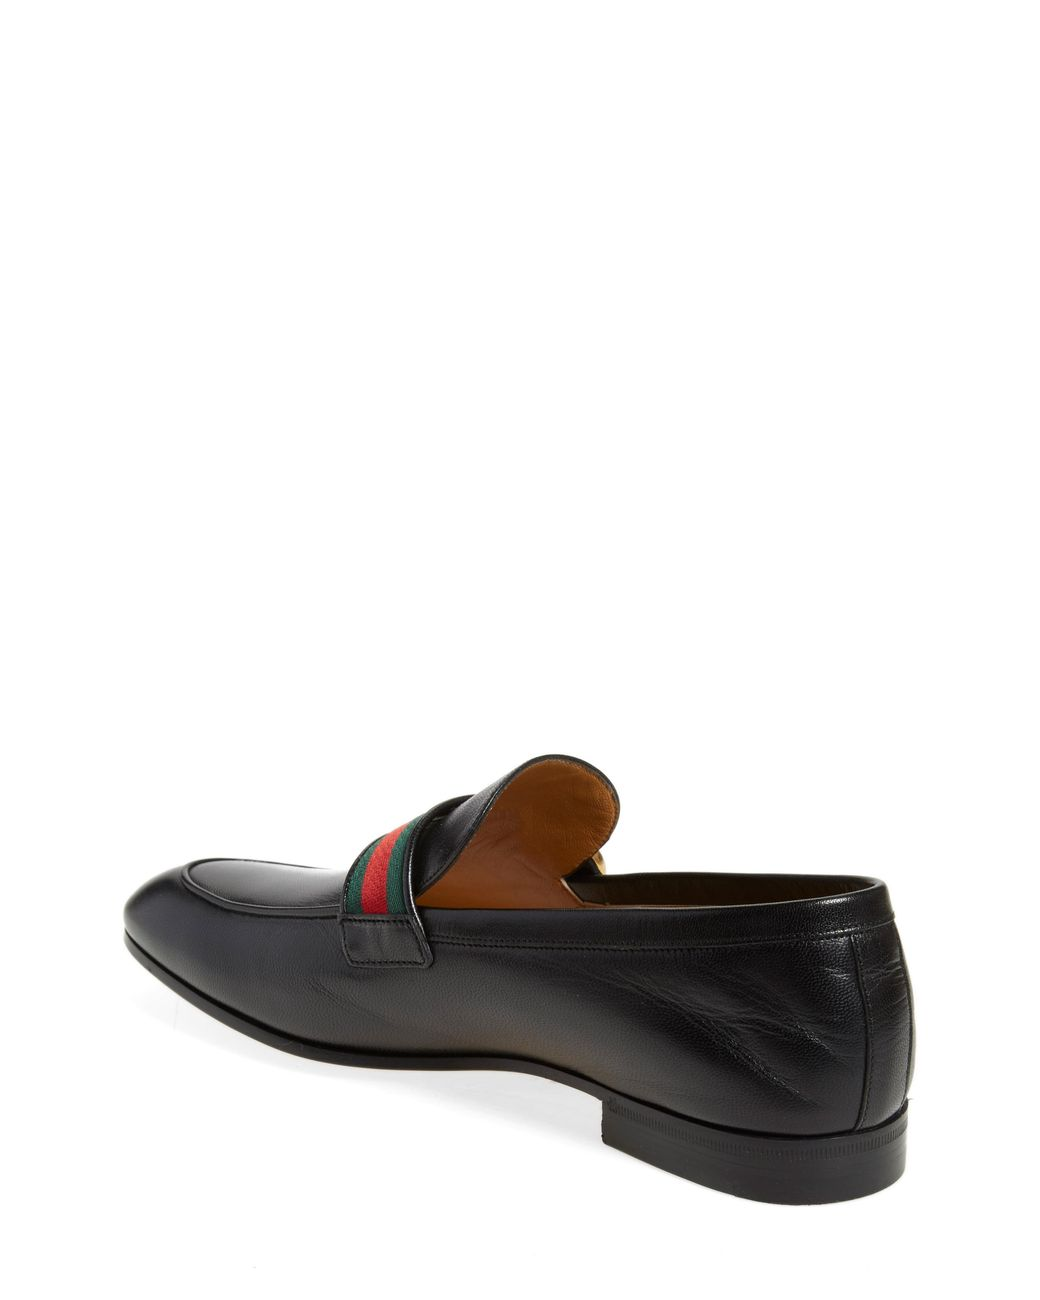 Gucci Donnie Double G Loafer in Nero